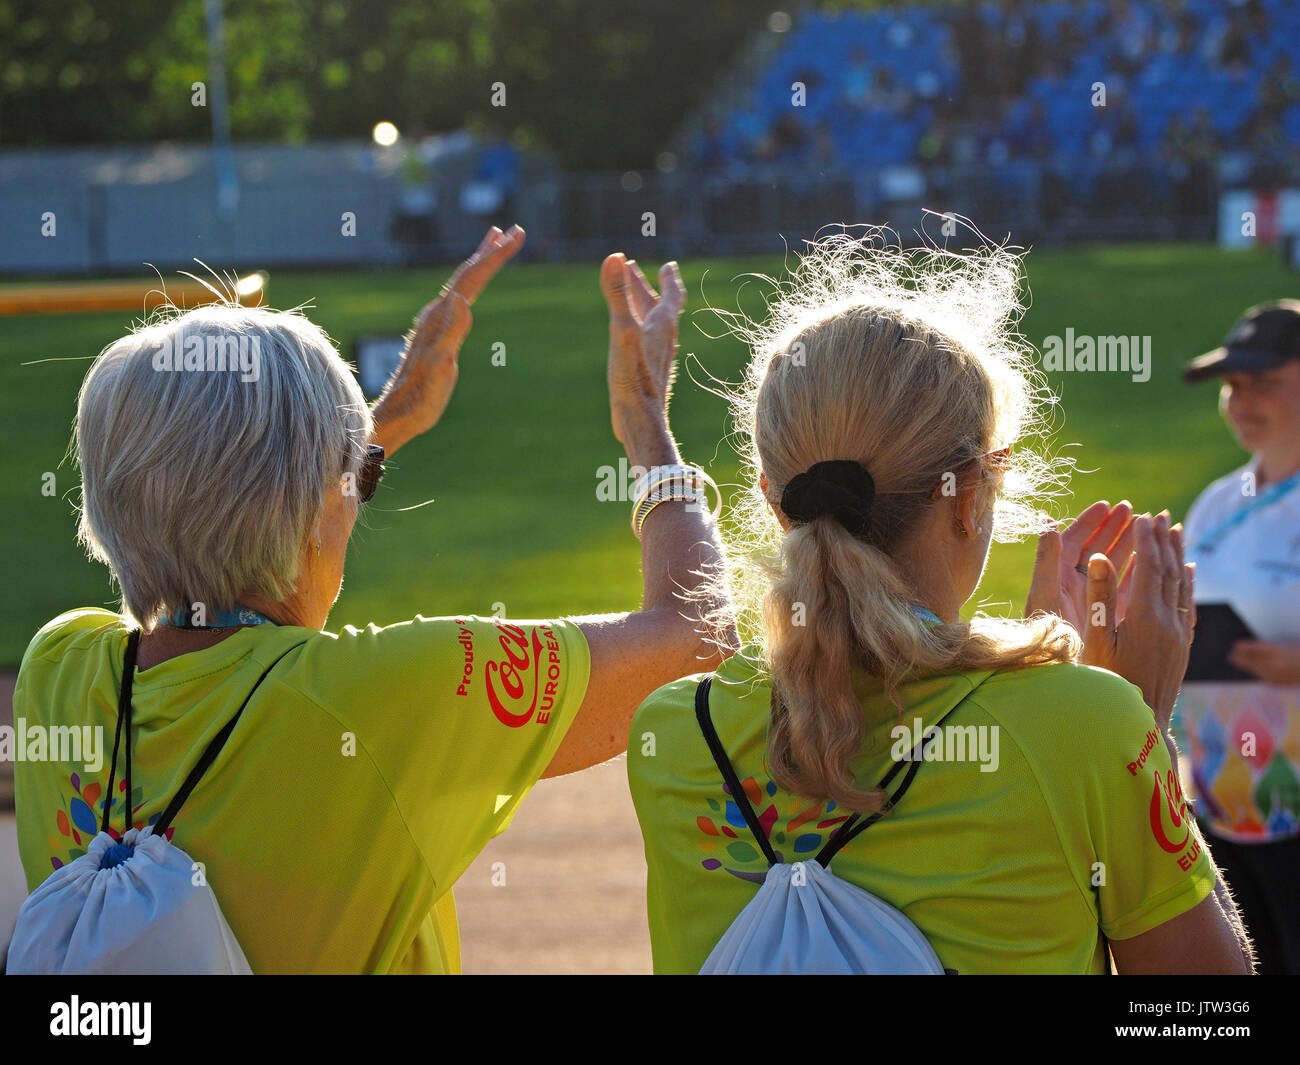 Sheffield, UK. 10th August, 2017. Volunteers applaud at the sunshine at Special Olympics National Games in Sheffield - Stock Image